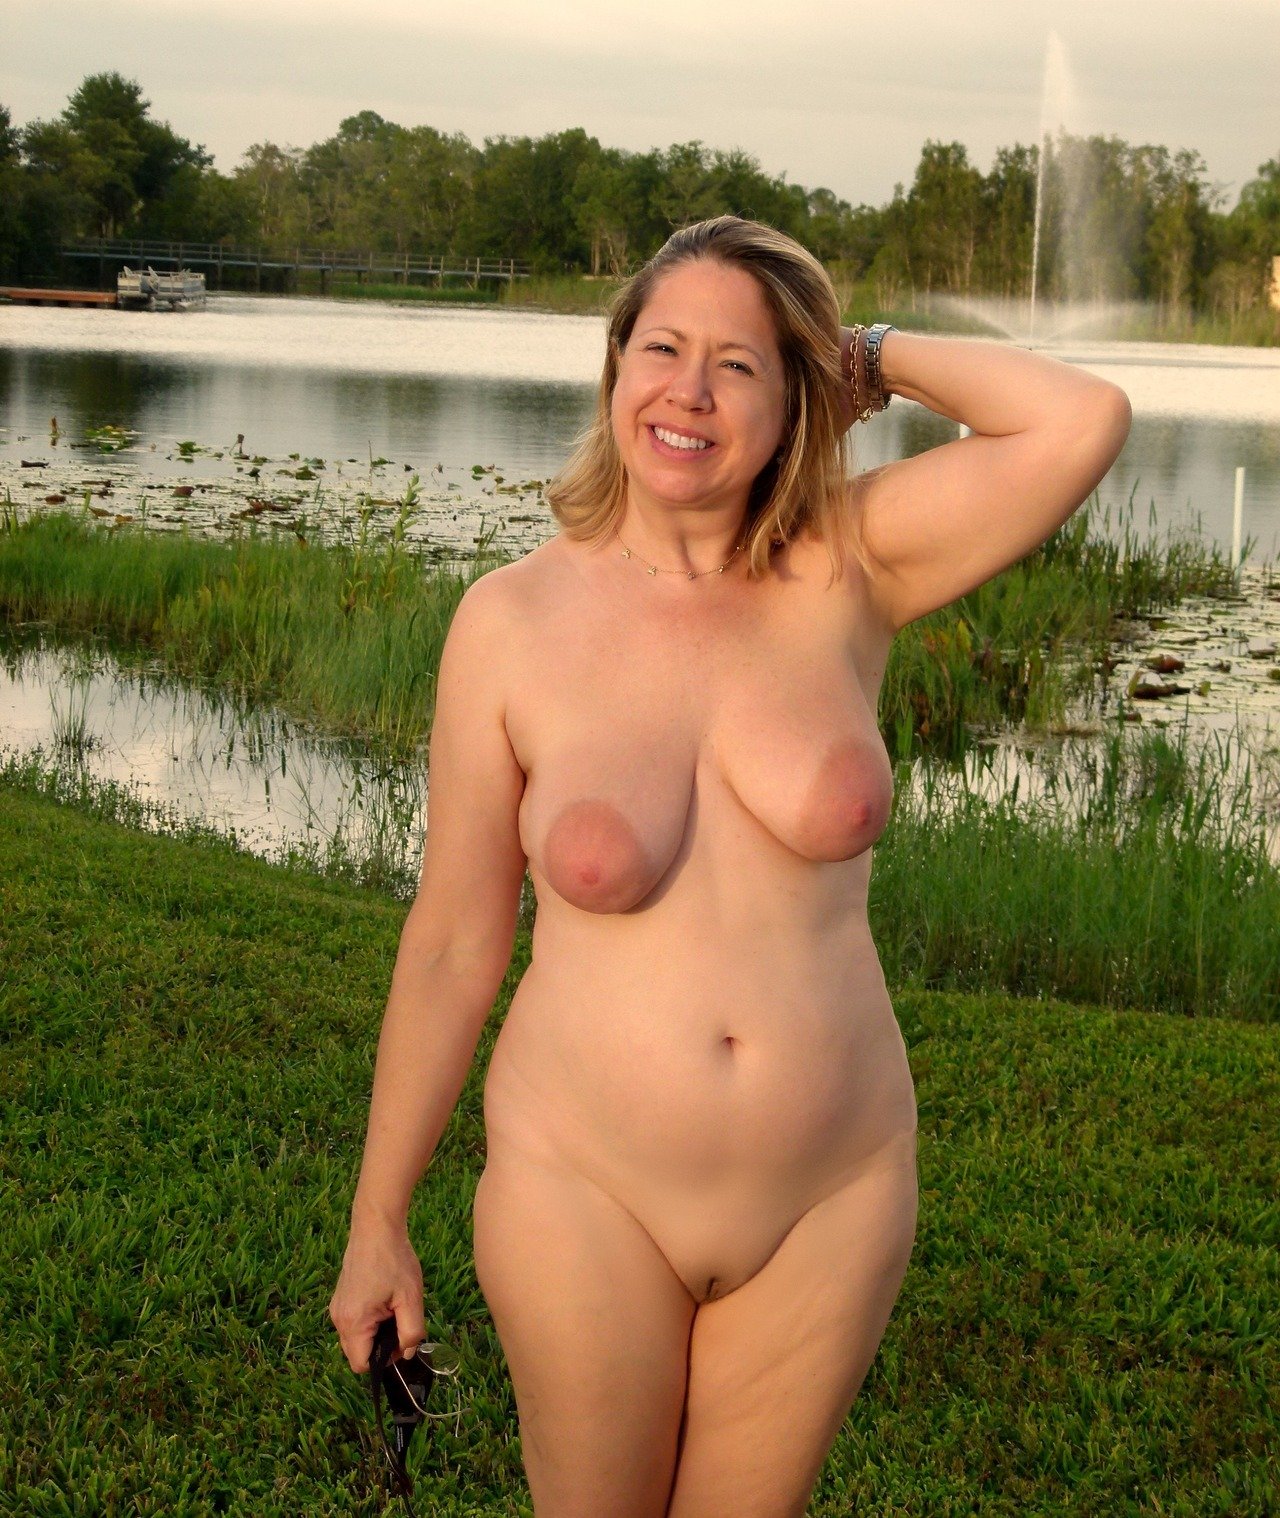 Exhibitionist Dating In Jacksonville